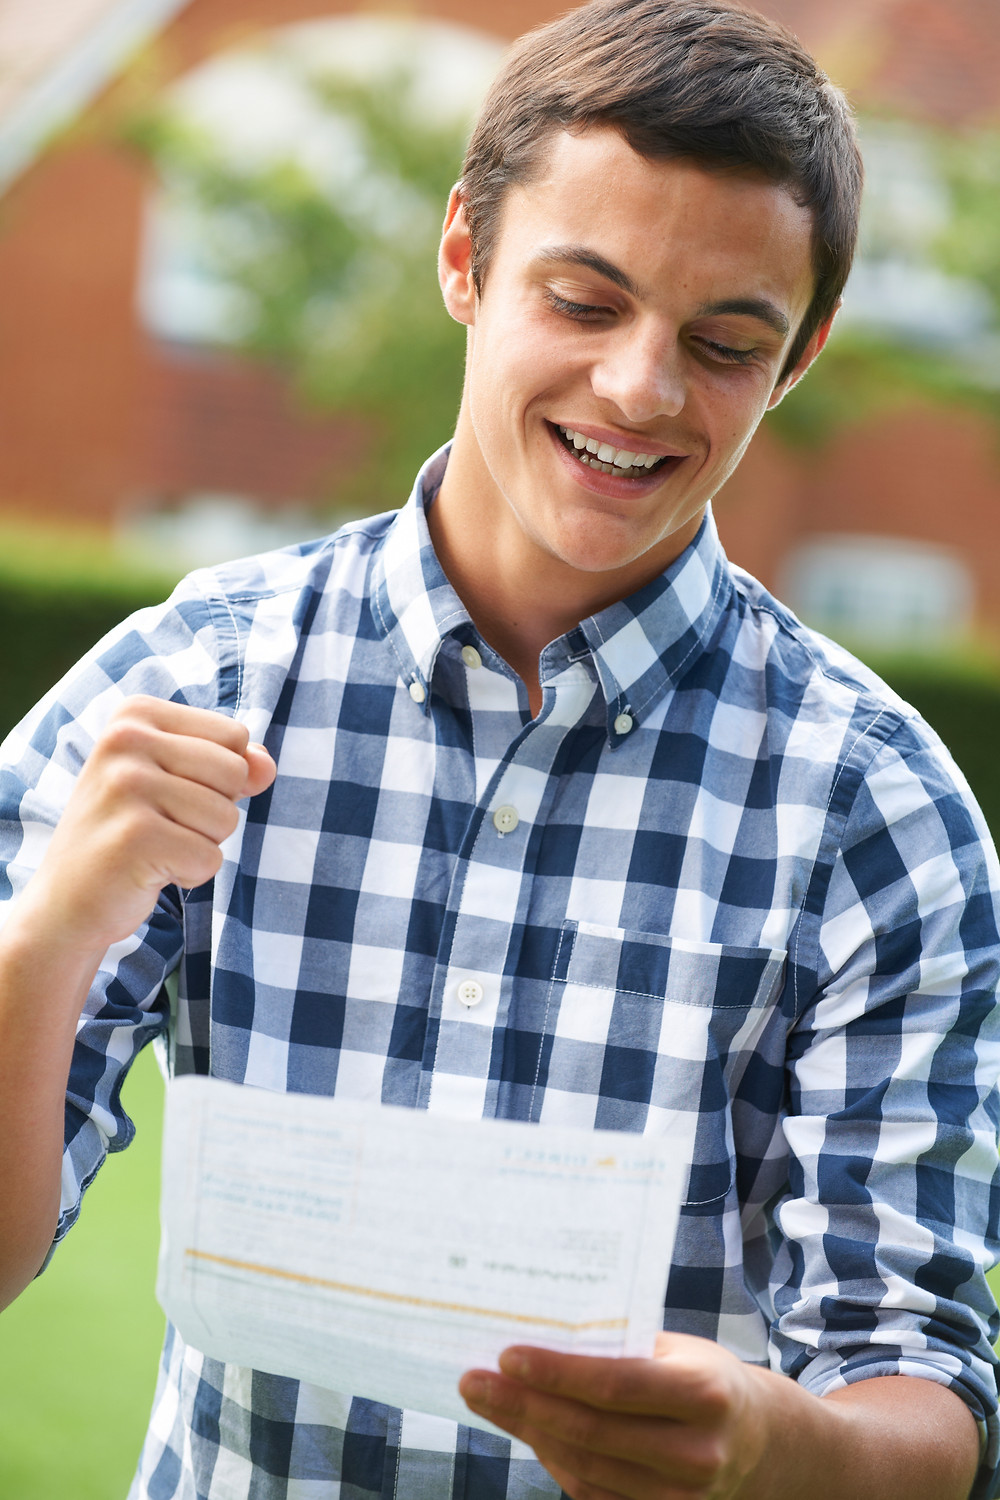 Teenage boy celebrating good a level results on results day 2020, excited